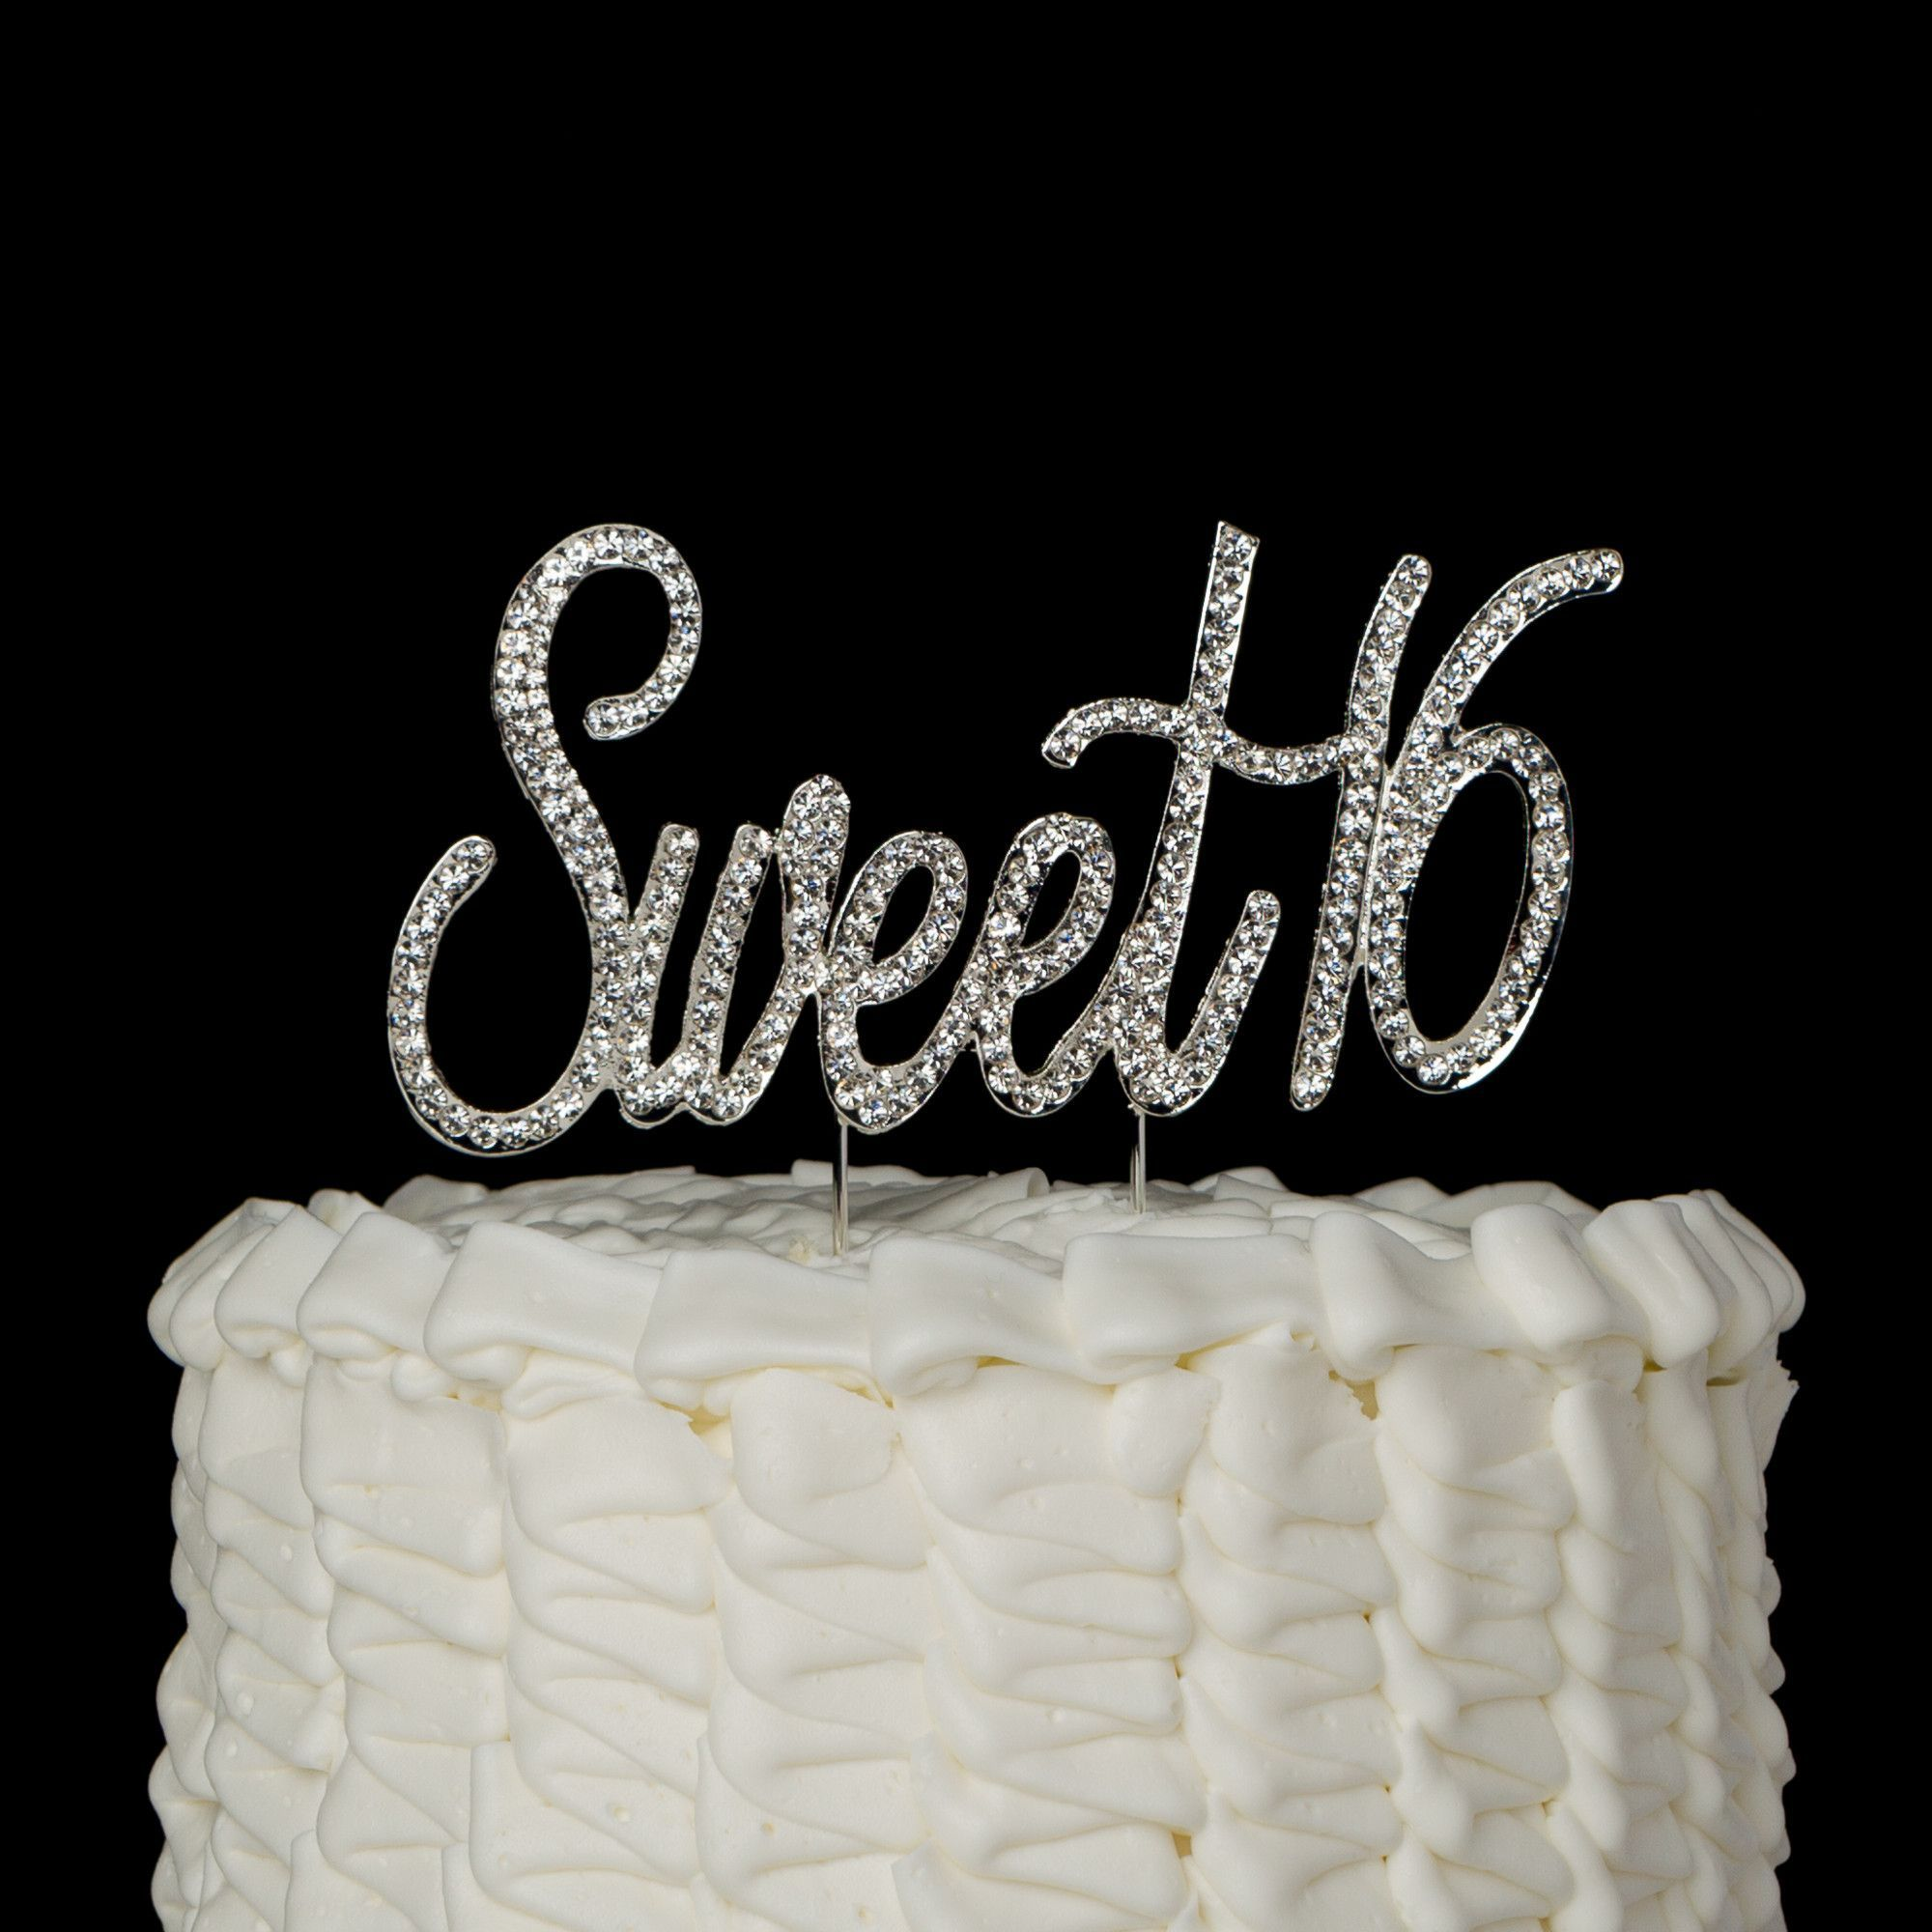 dfe8eaf23e98 Sweet Sixteen 16 Birthday Number Cake Topper - Silver Crystal Rhinestone  16th Decoration Get the Best for the Best  With such a momentous occasion